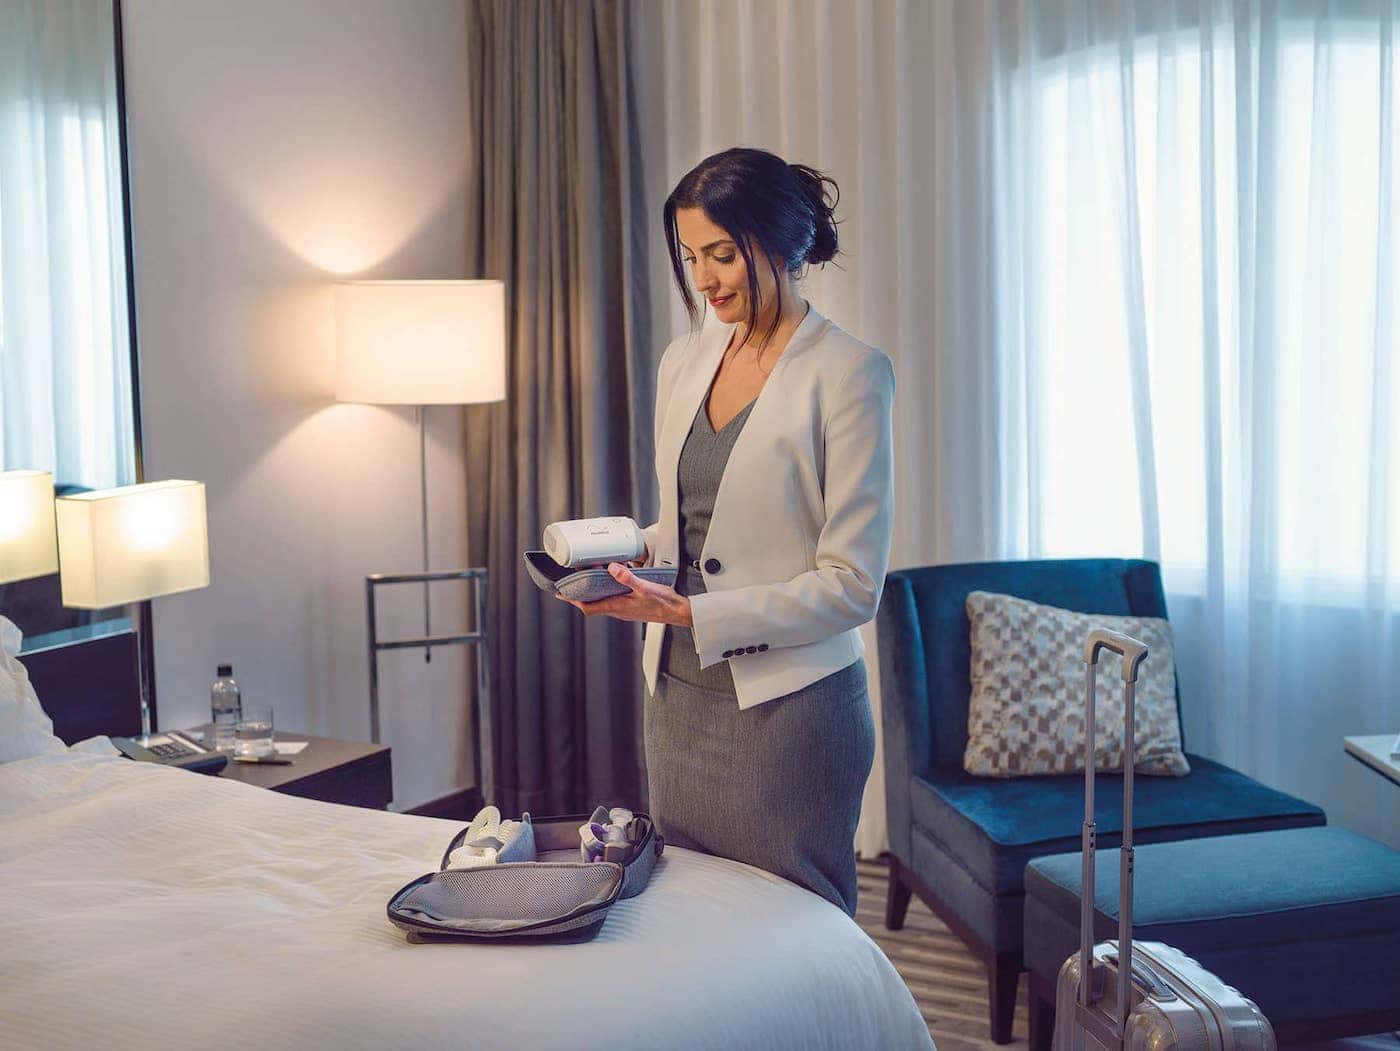 Thirty-something, professional woman in a hotel room putting her Resmed AirMini portable CPAP machine in a carry-on suitcase